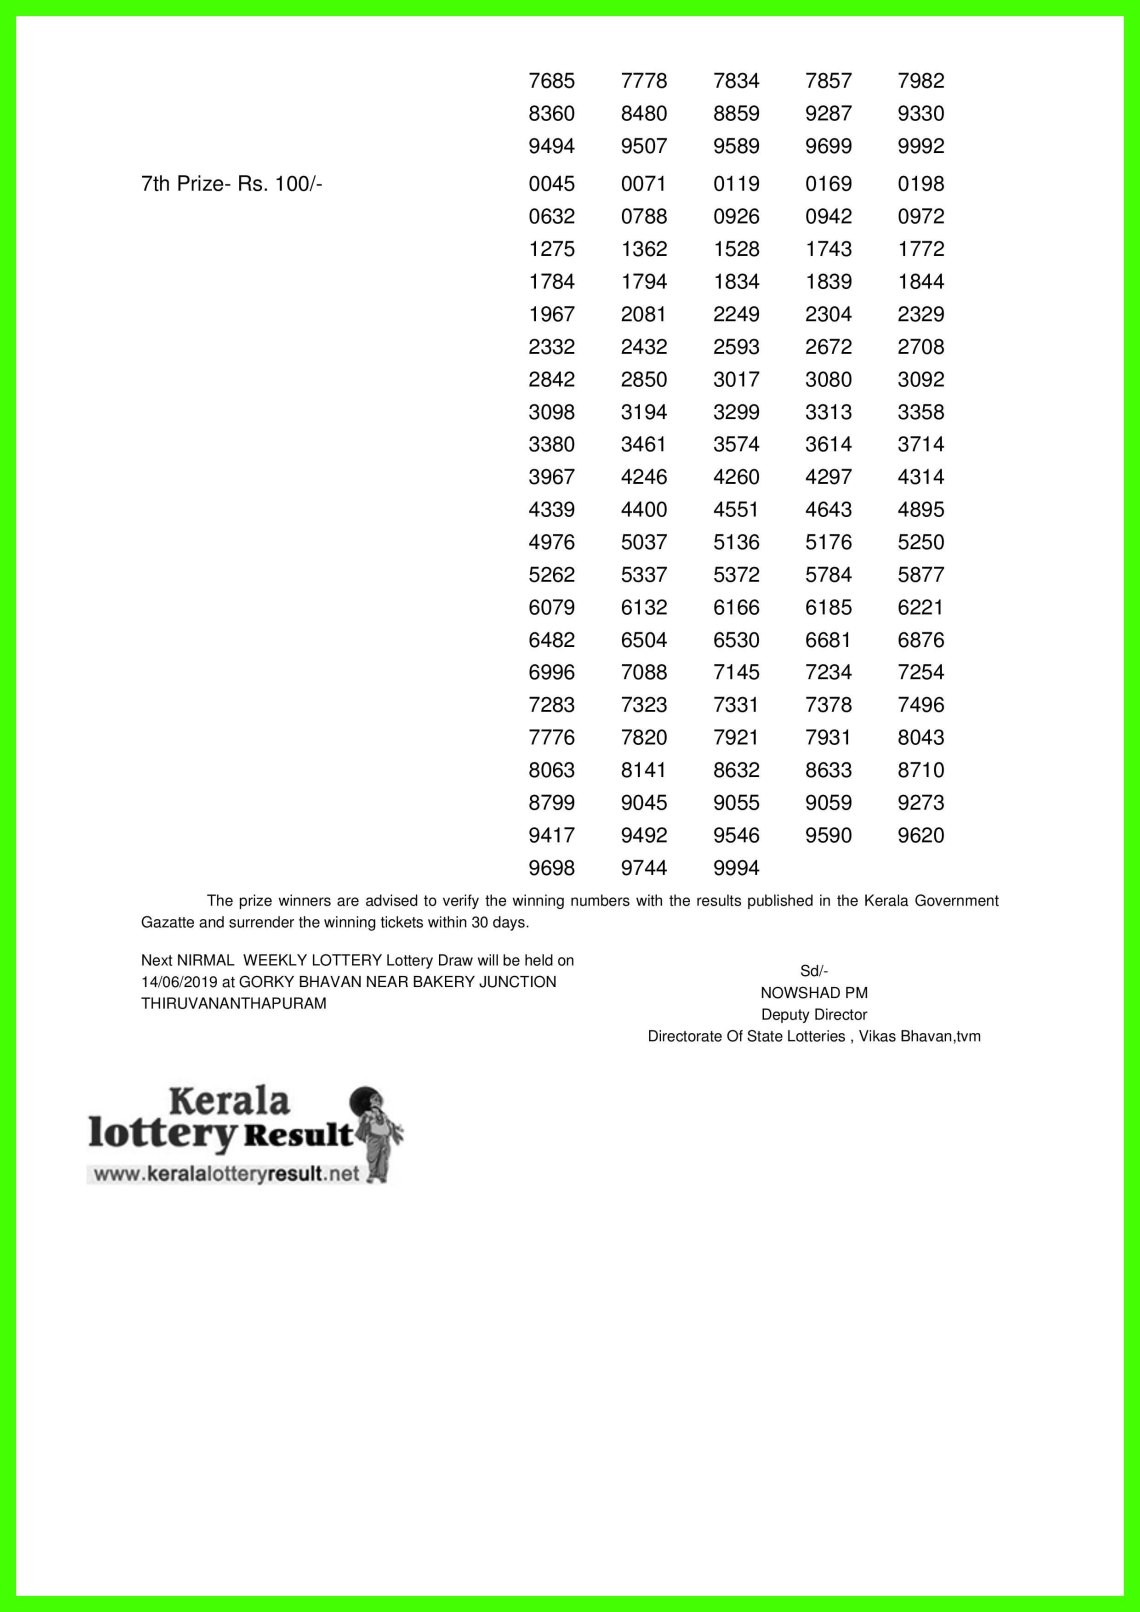 NIRMAL WEEKLY LOTTERY LOTTERY NO. NR-124th DRAW held on 07.06.2019-page-002